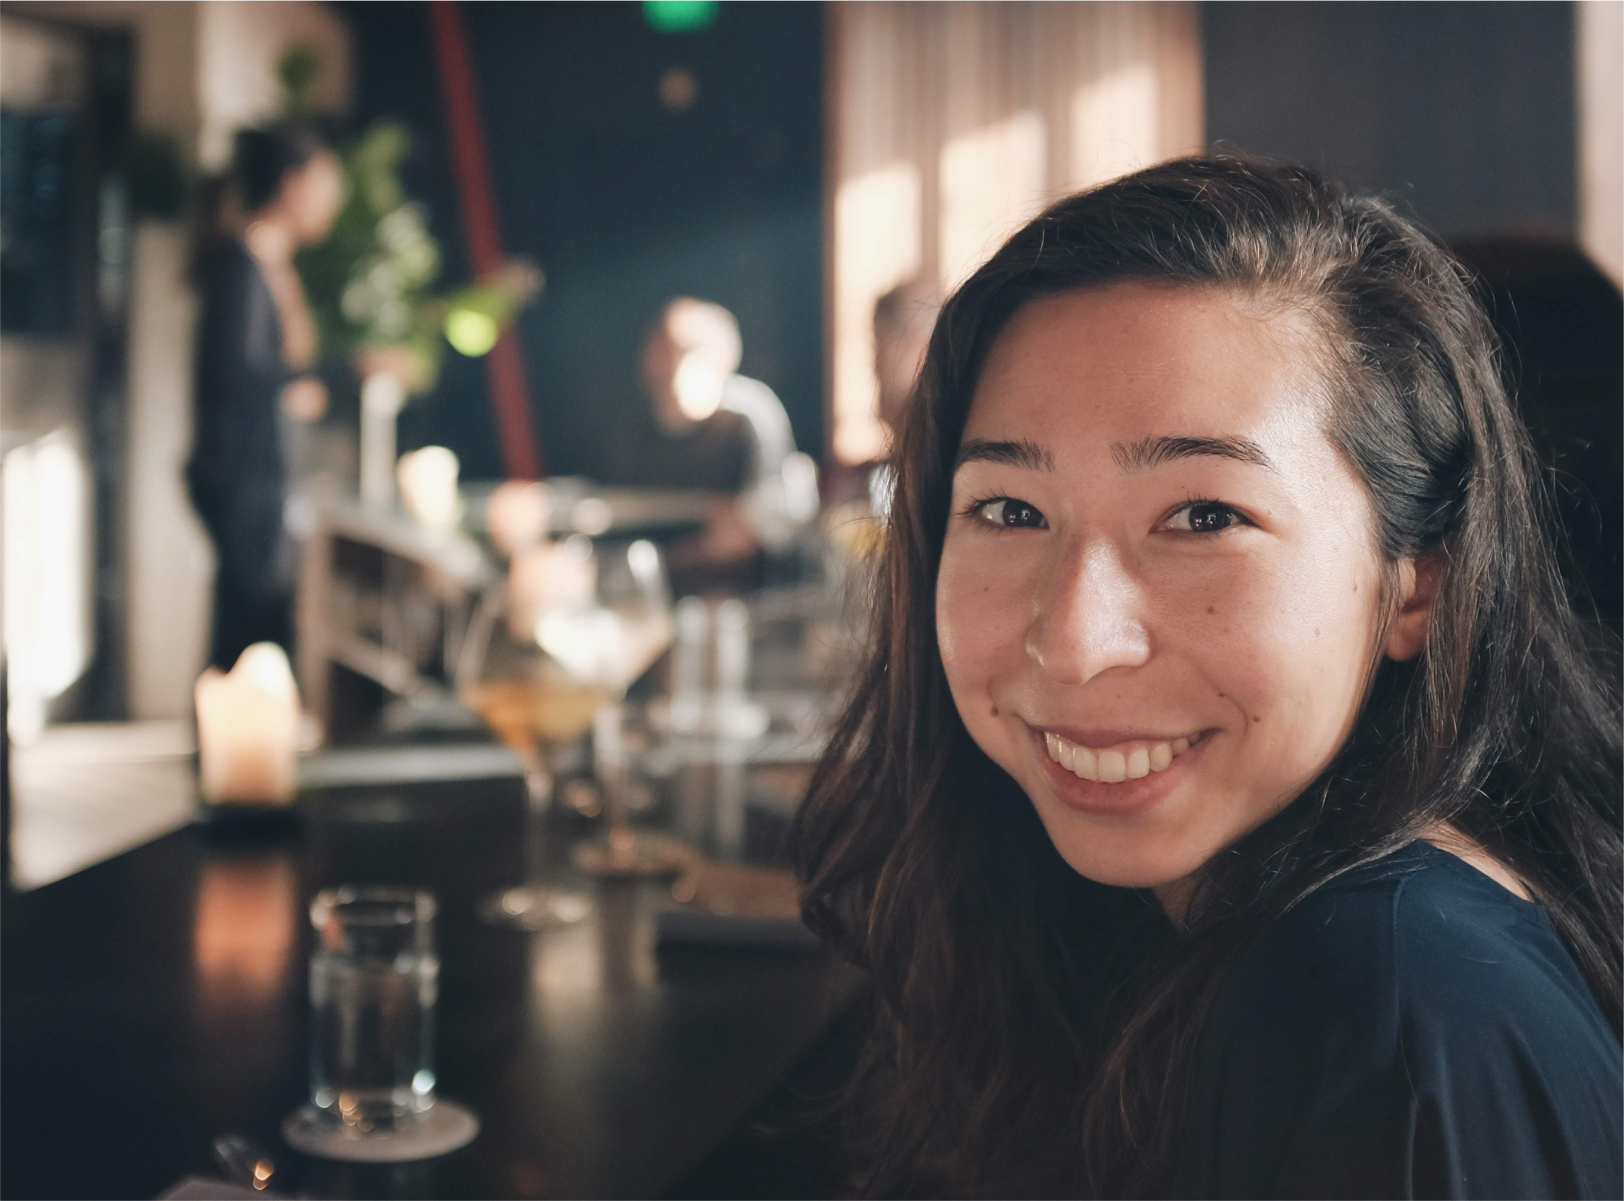 A photo of the site author, Sara, seated at a restaurant and smiling at the camera.